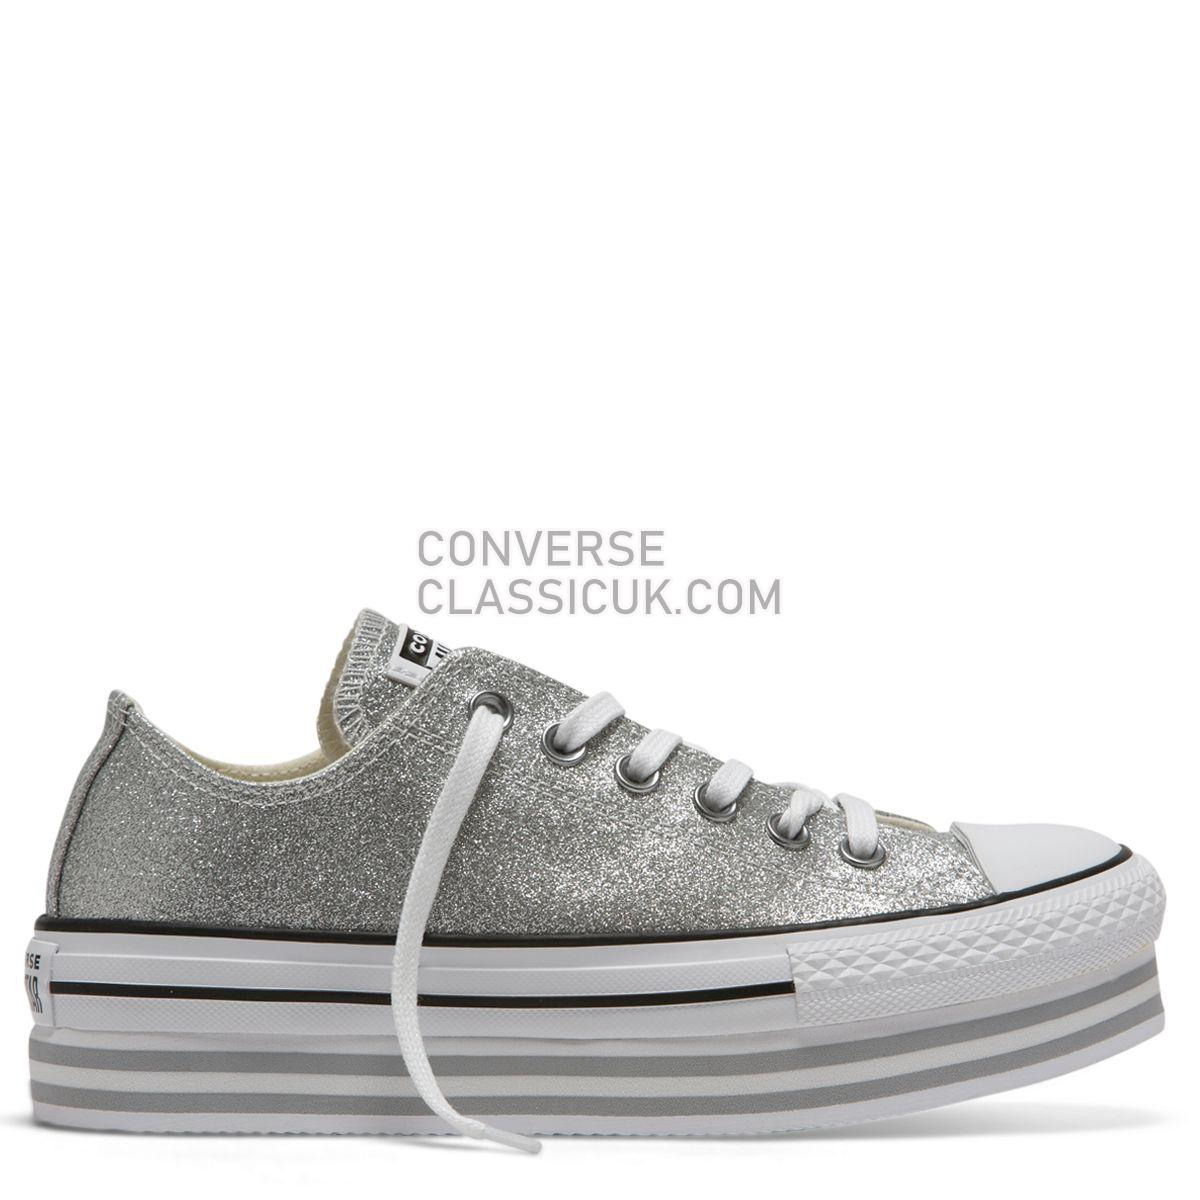 Converse Chuck Taylor All Star Shiny Metal Platform Low Top Silver Womens 564878 Silver/Wolf Grey/White Shoes